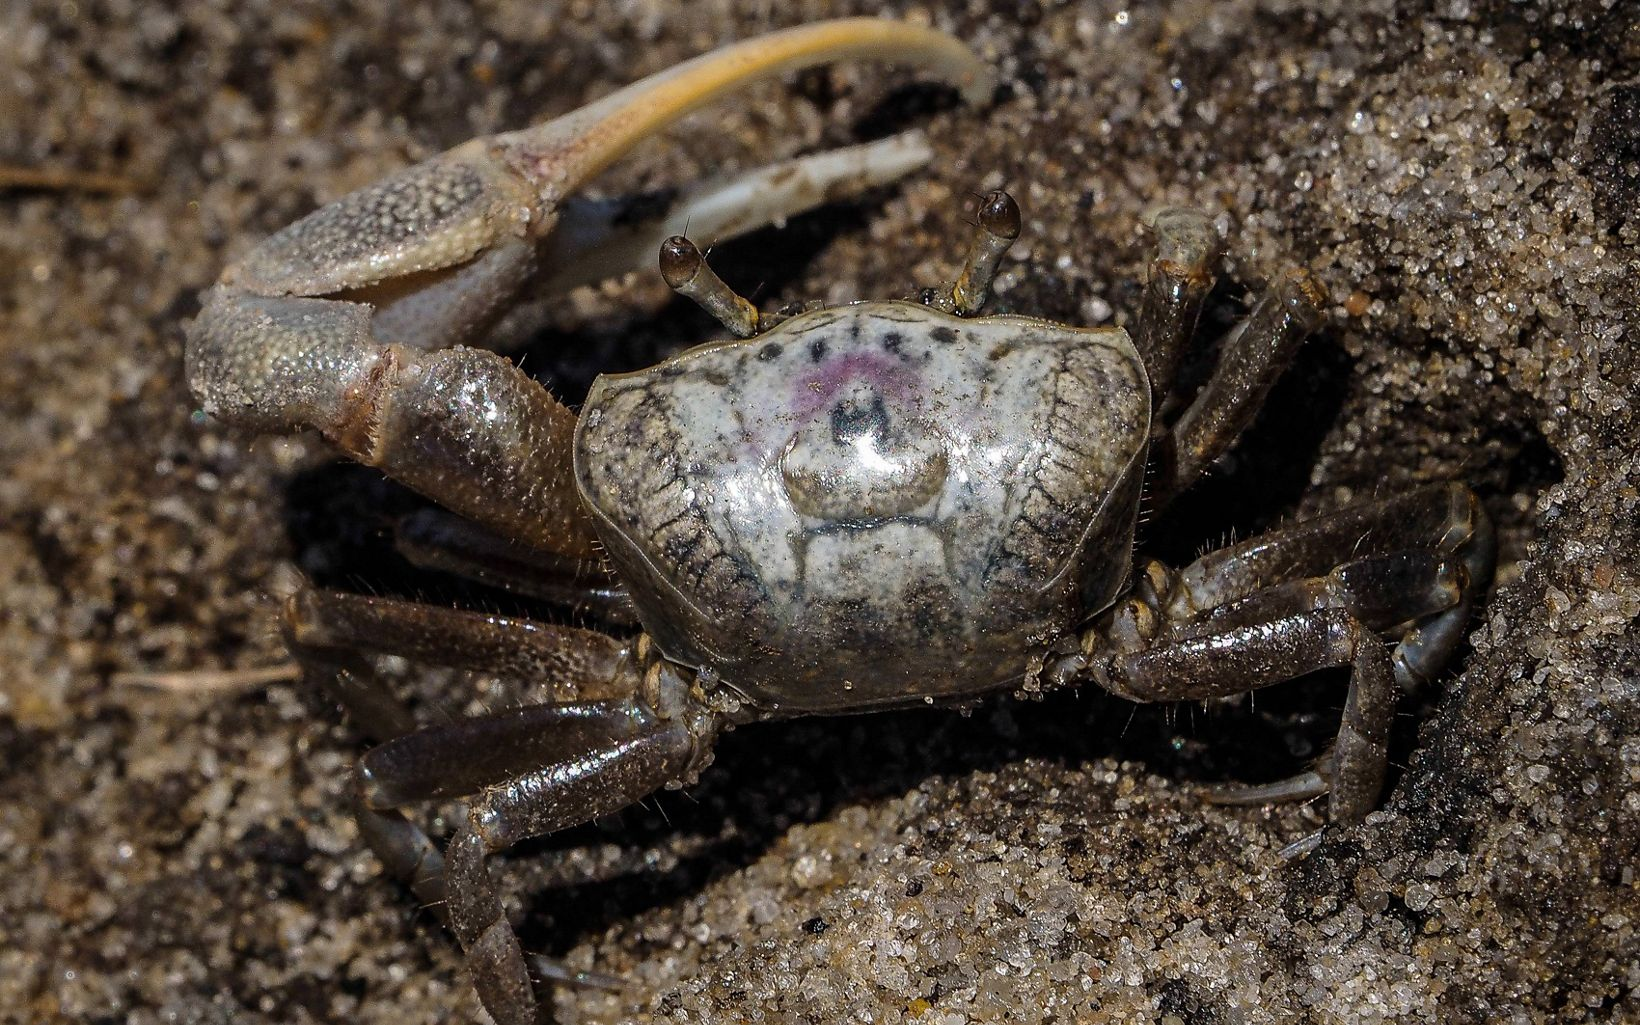 Closeup of a fiddler crab in sand.